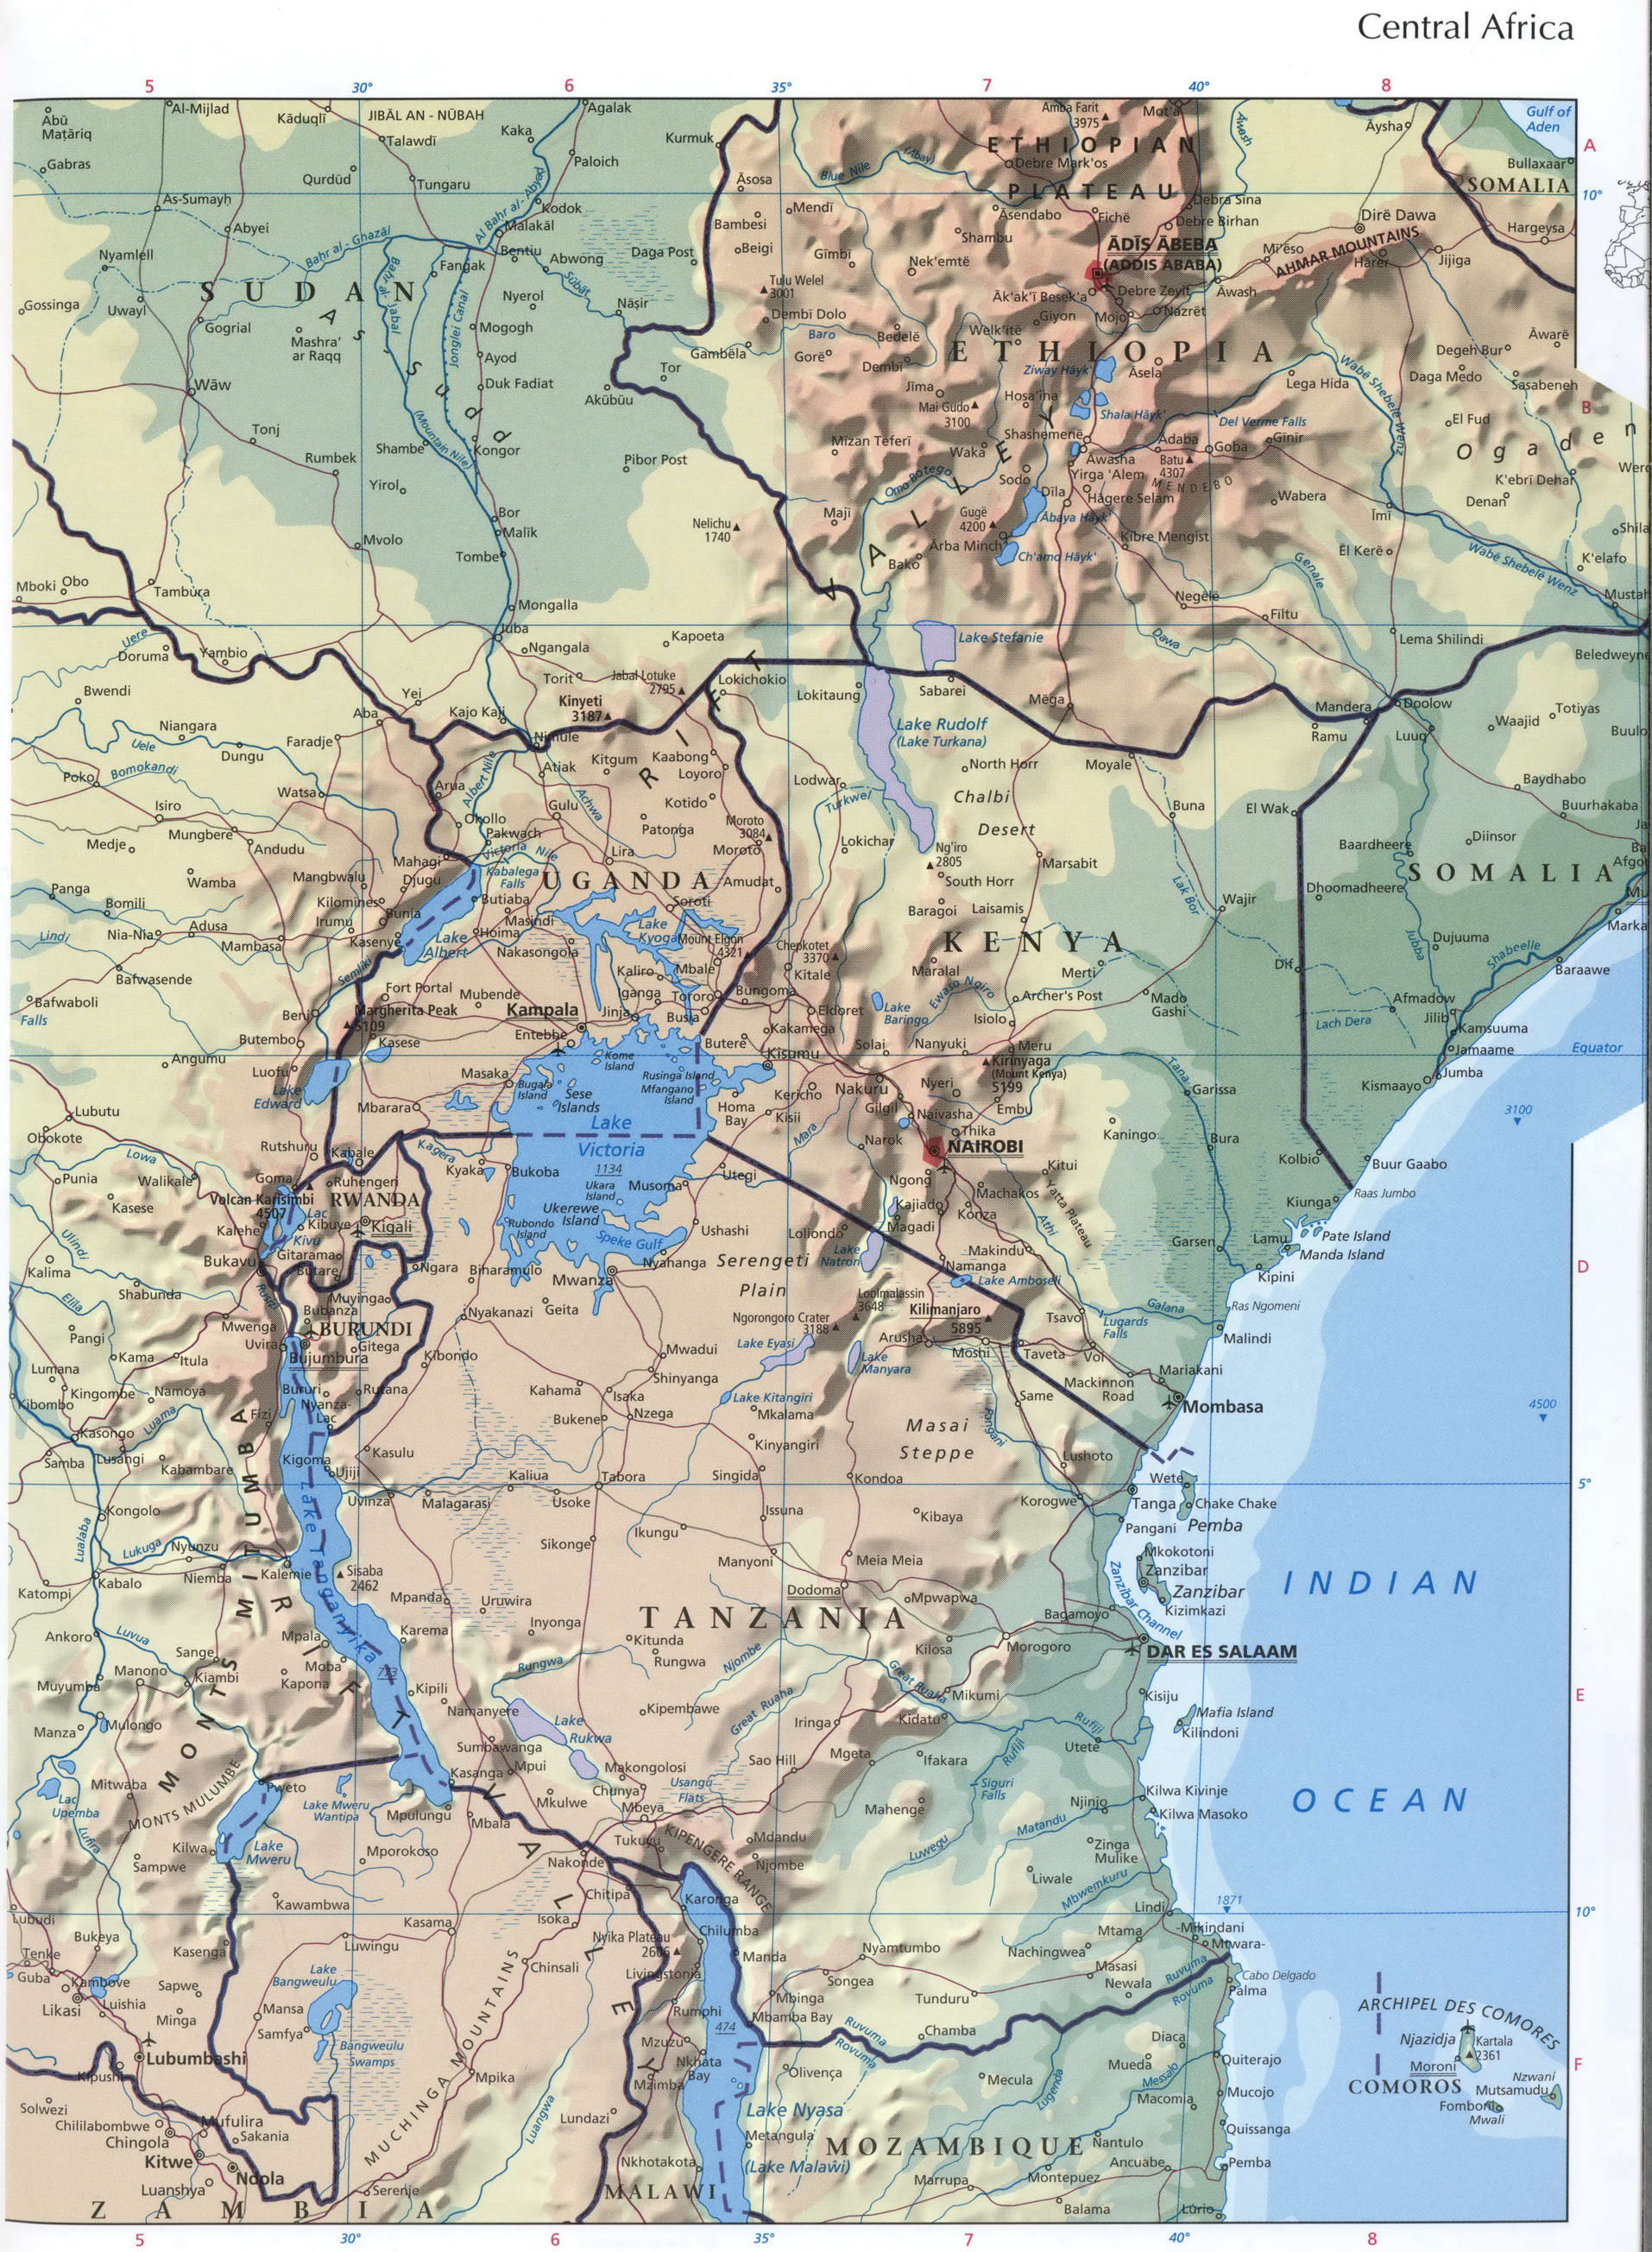 Central Africa map detailed